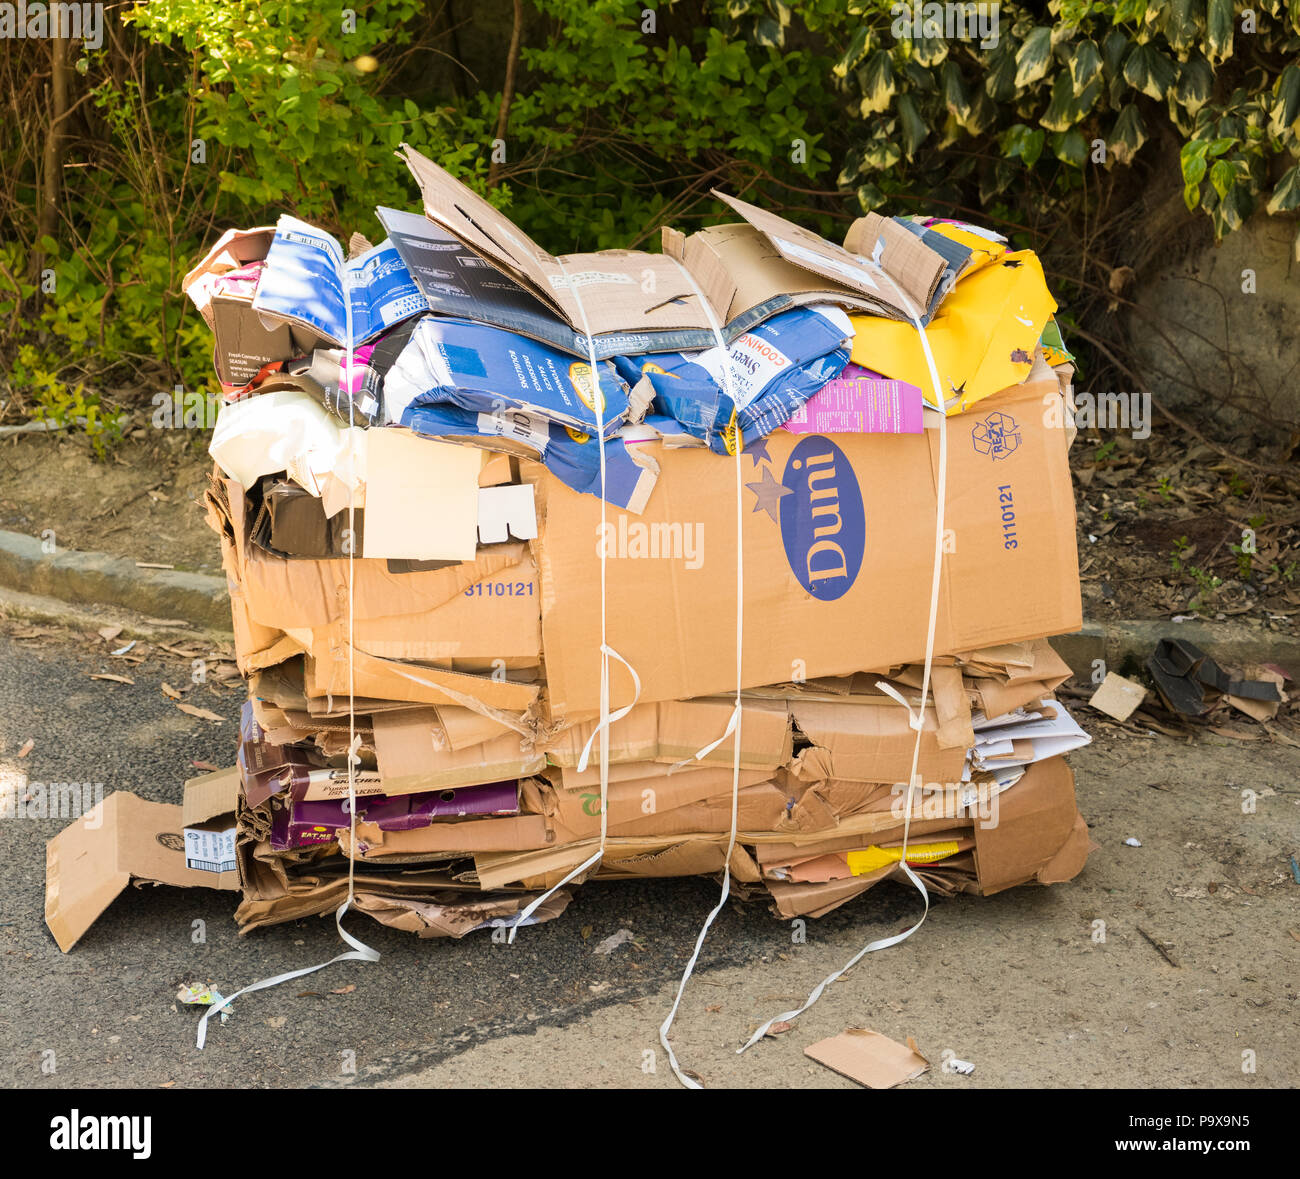 Cardboard boxes flattened and stacked for recycling collection, England UK - Stock Image